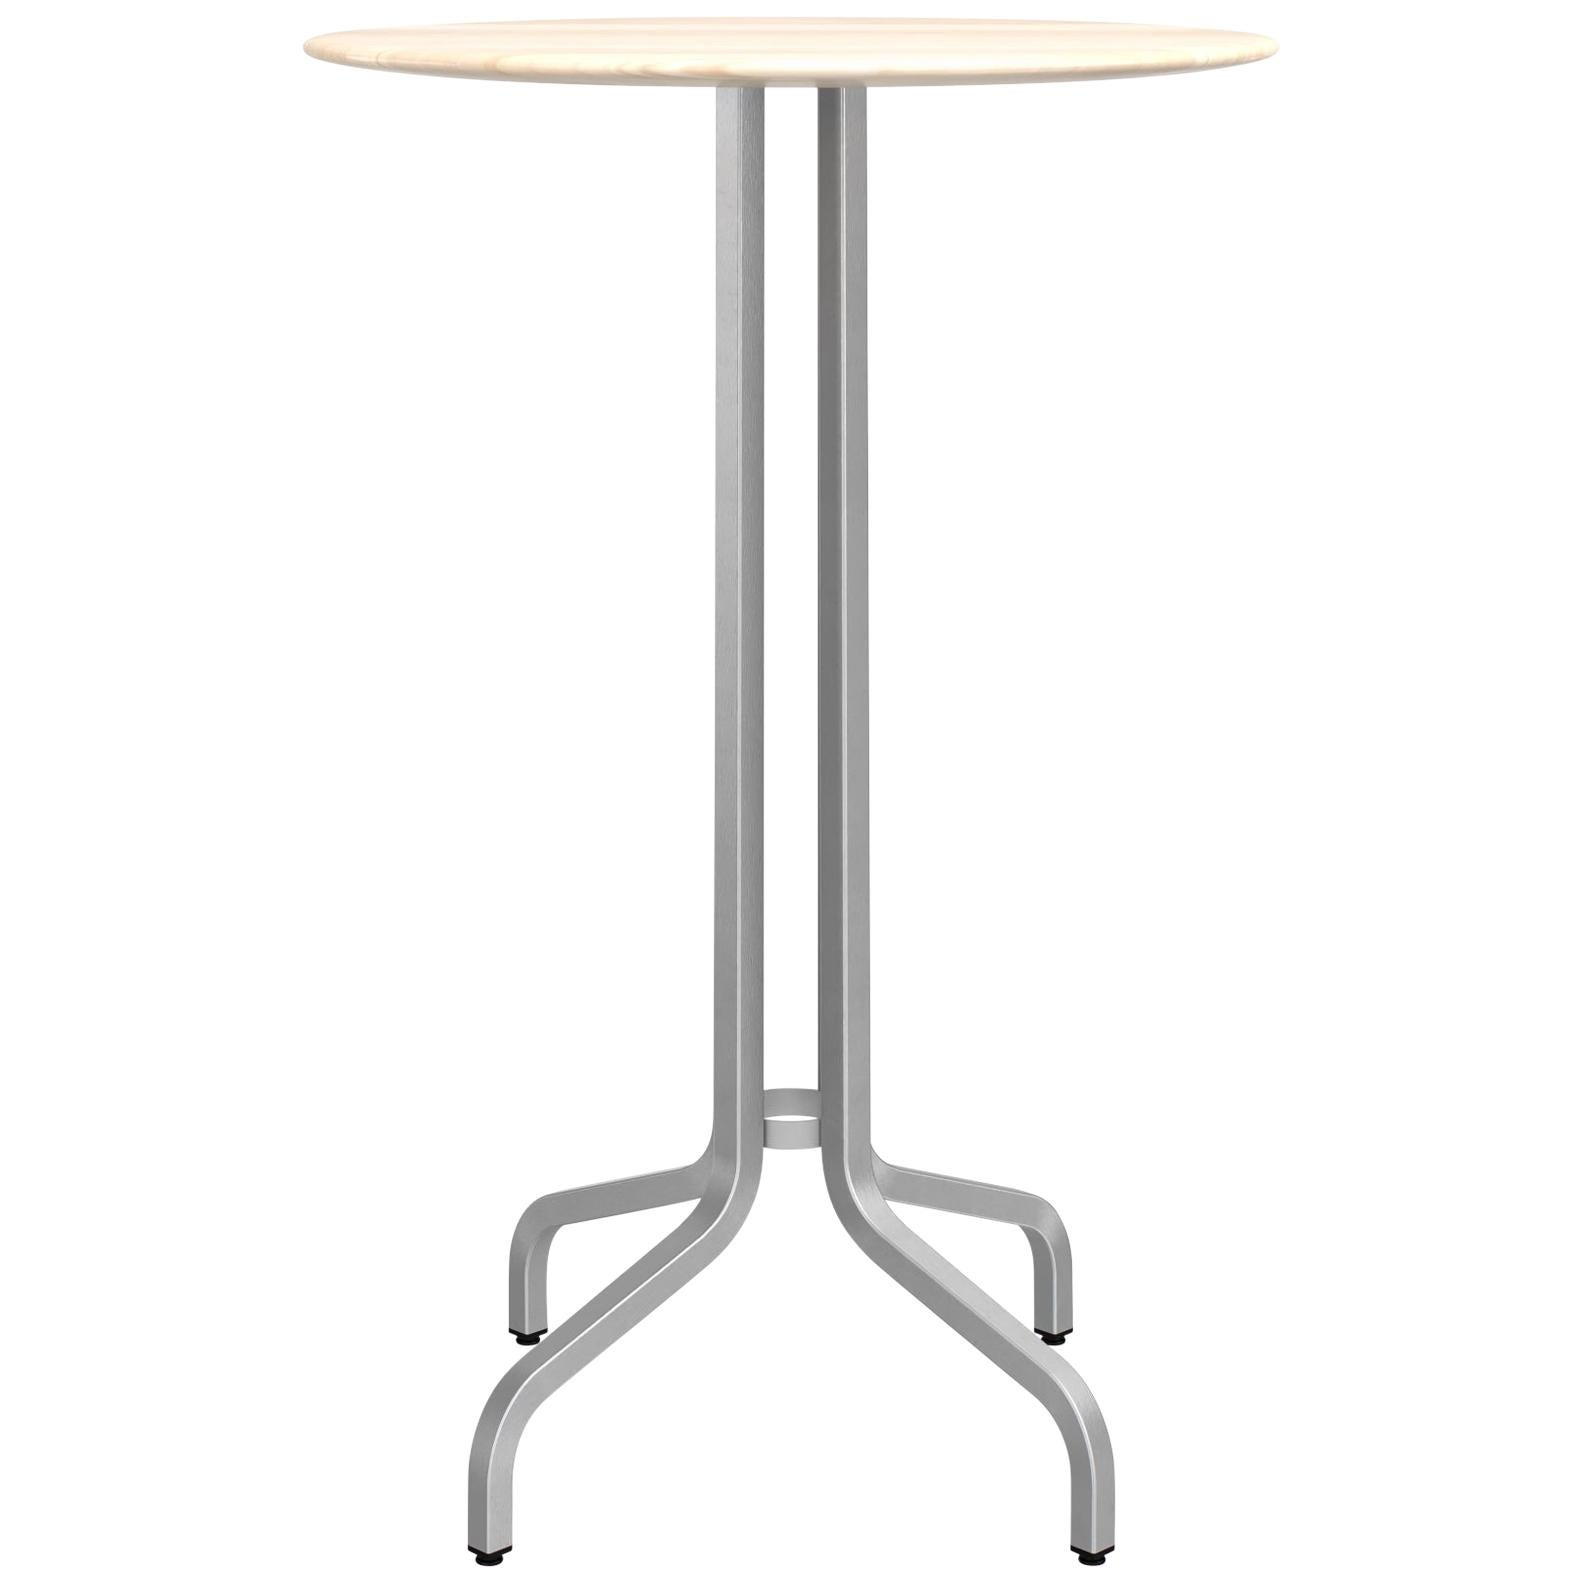 Emeco 1 Inch Large Round Bar Table with Aluminum & Wood by Jasper Morrison